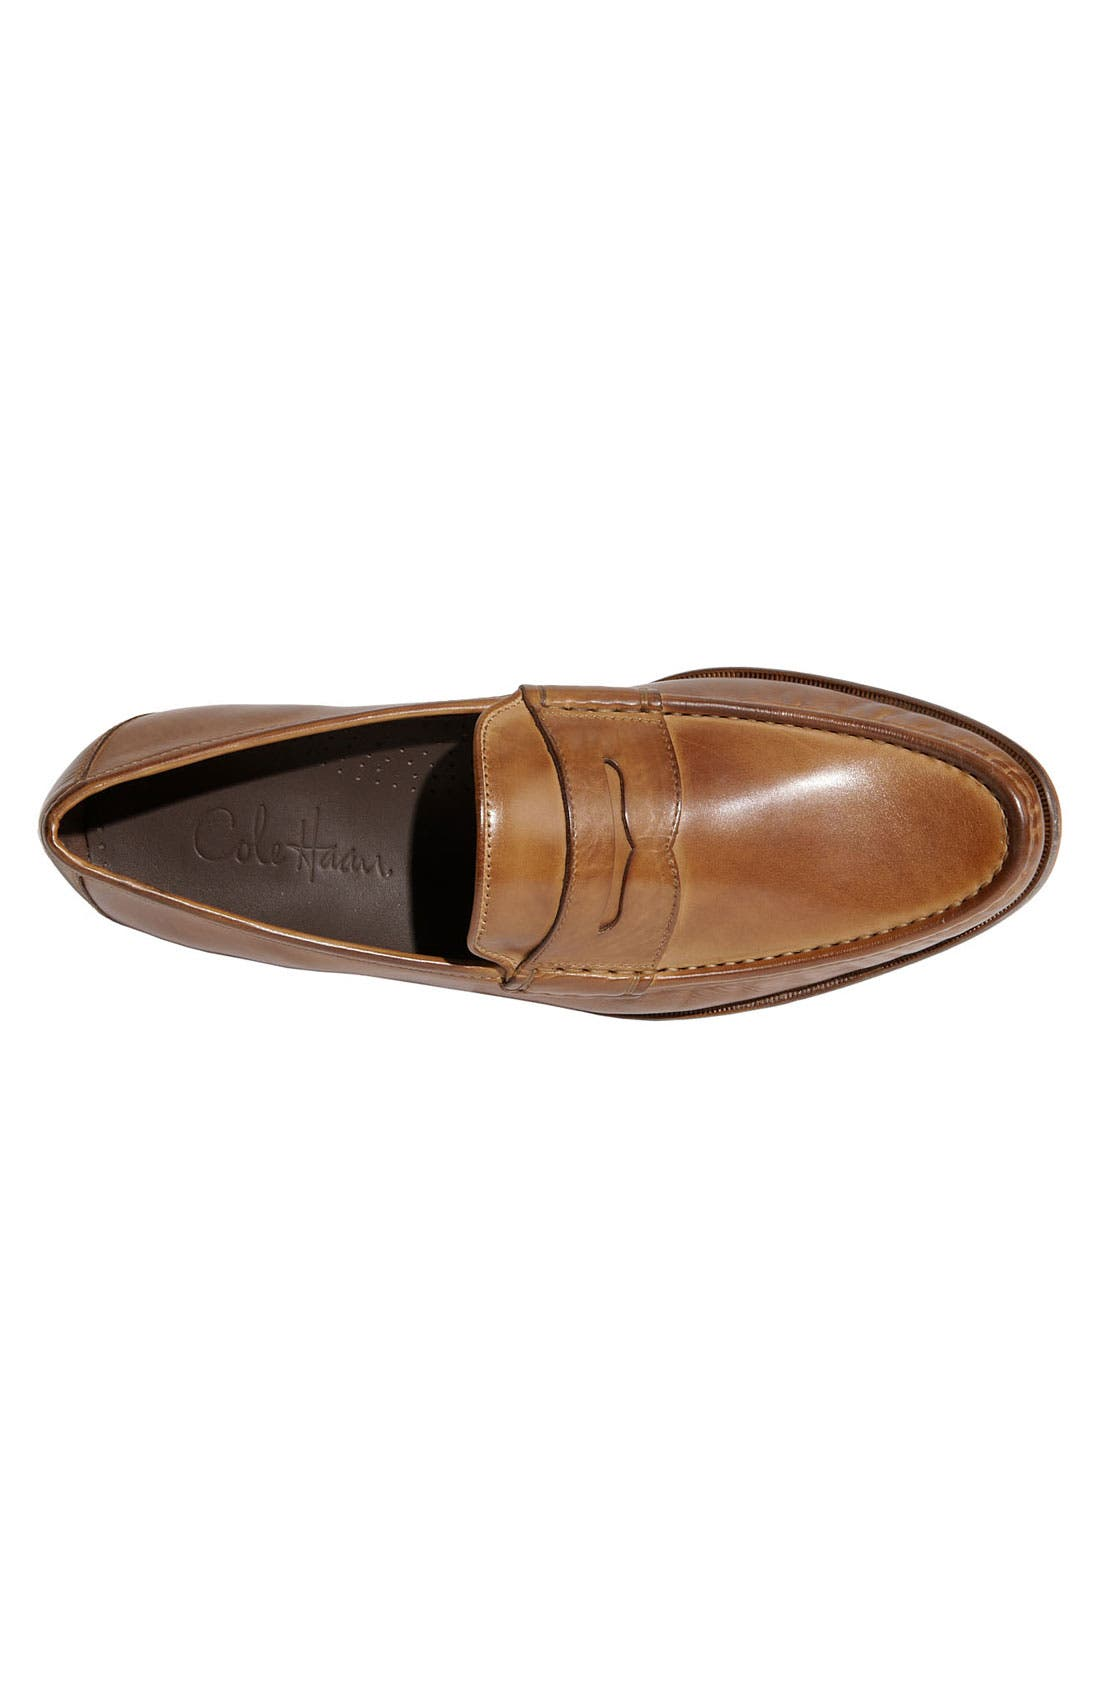 Alternate Image 3  - Cole Haan 'Air Aiden' Penny Loafer